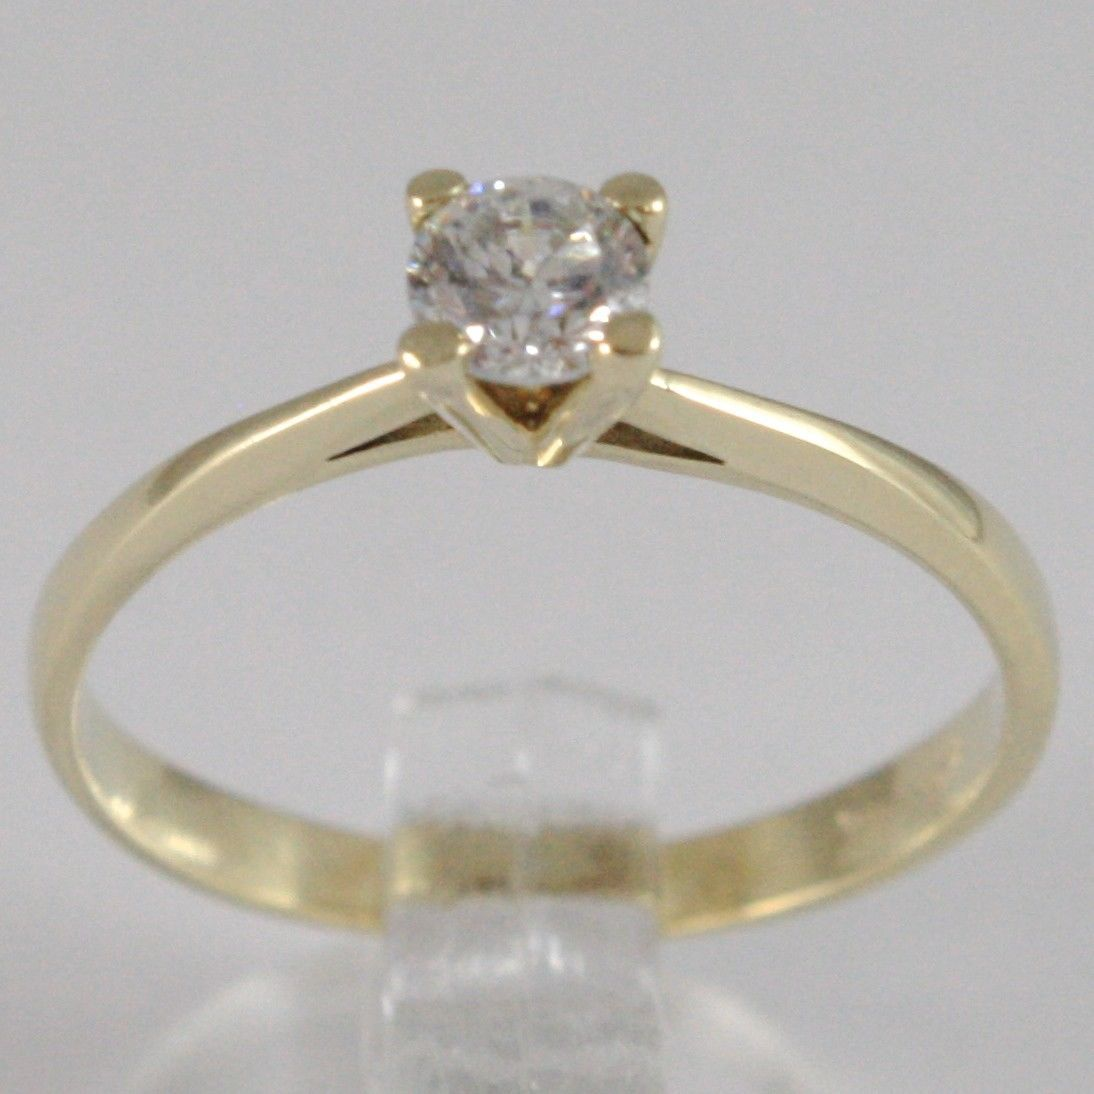 YELLOW GOLD RING 750 18K, SOLITAIRE ZIRCON CUBIC CT 0.35, MADE IN ITALY